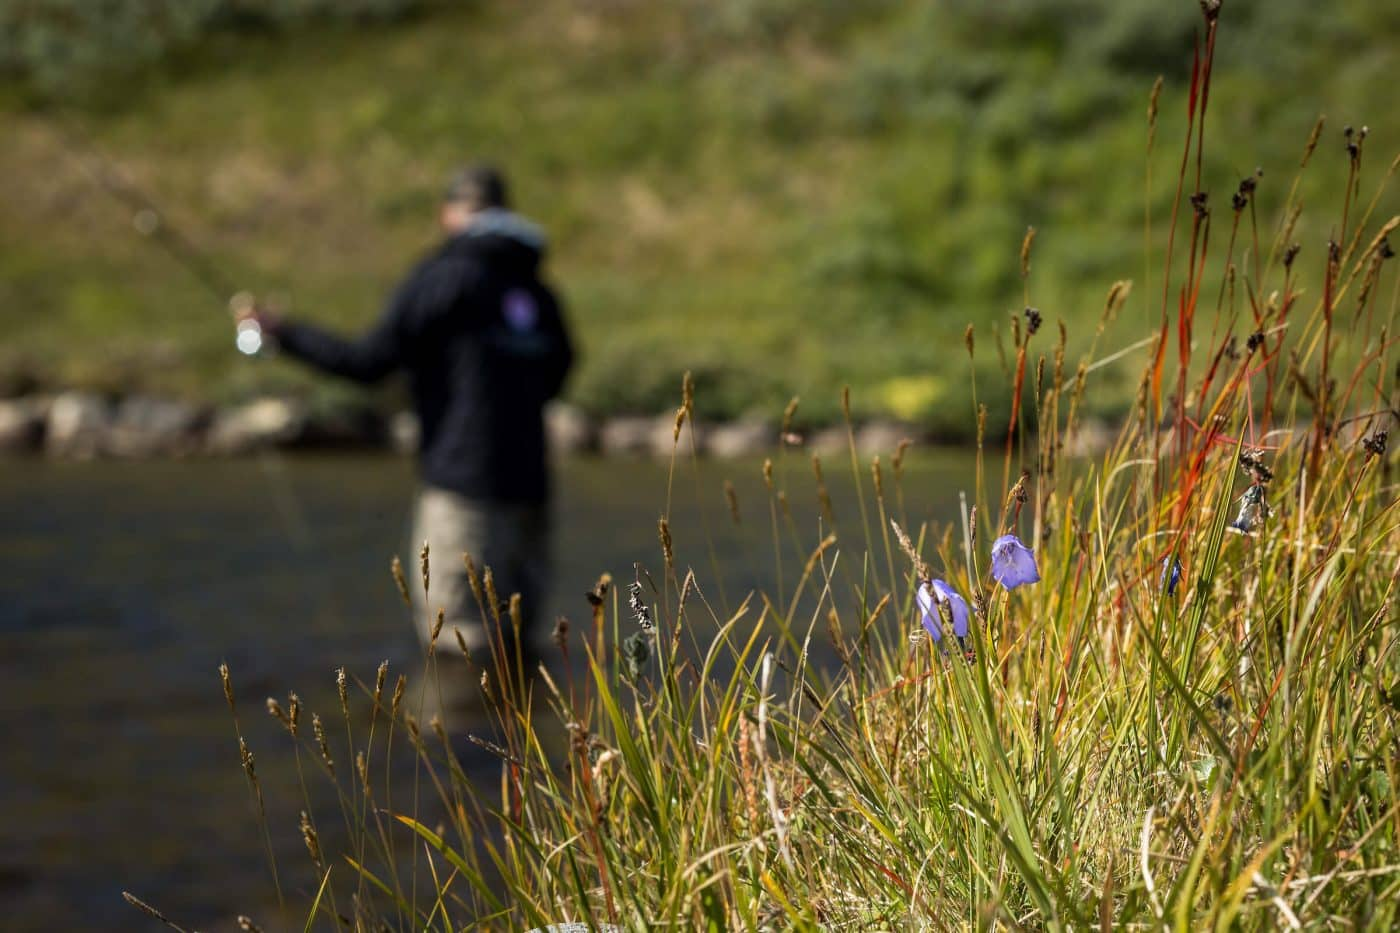 Fly fishing for arctic charr amon flowers and green meadows in South Greenland. By Mads Pihl